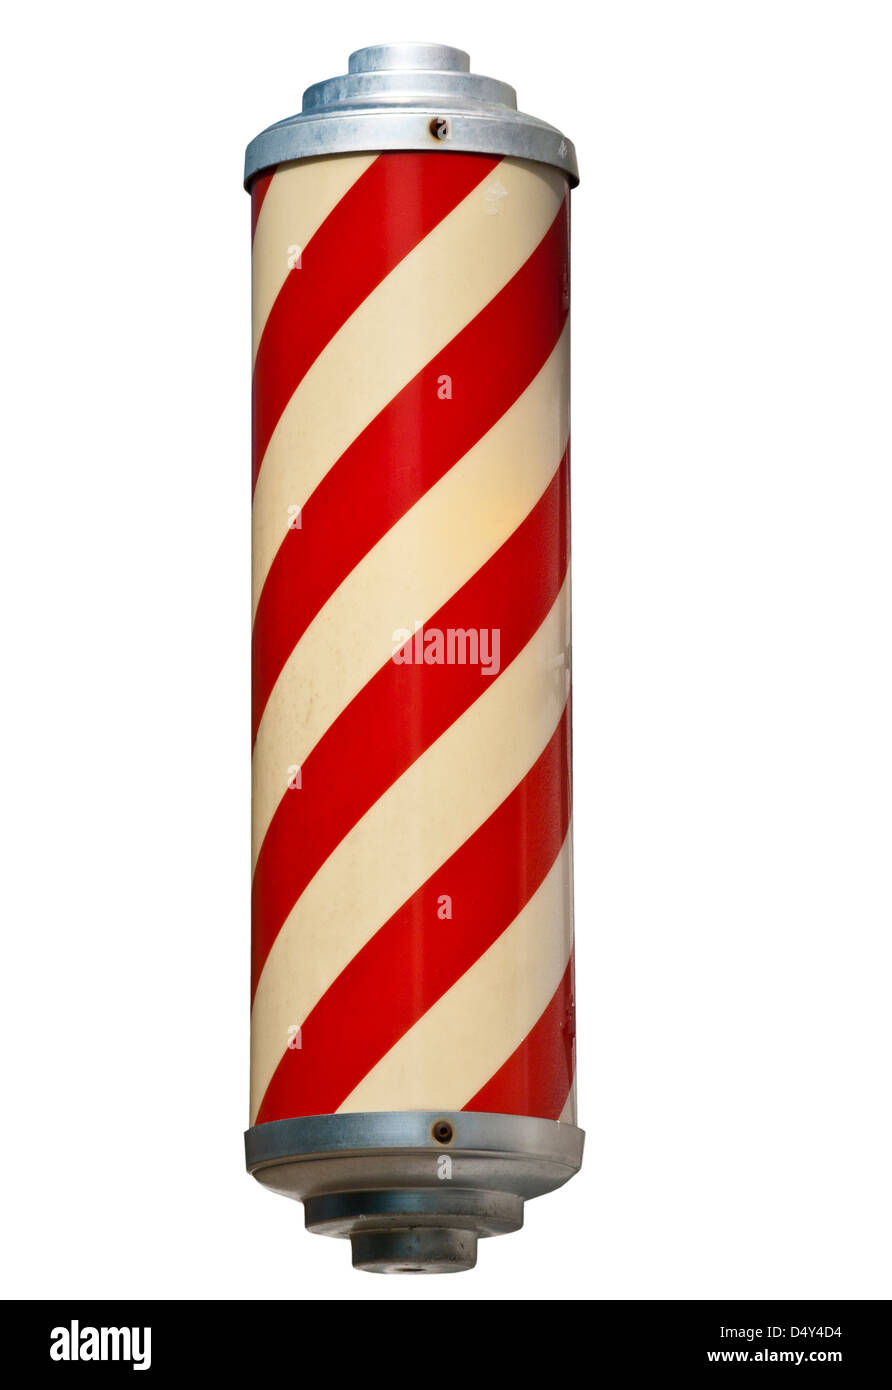 [Image: red-and-white-candy-cane-barbers-pole-D4Y4D4.jpg]